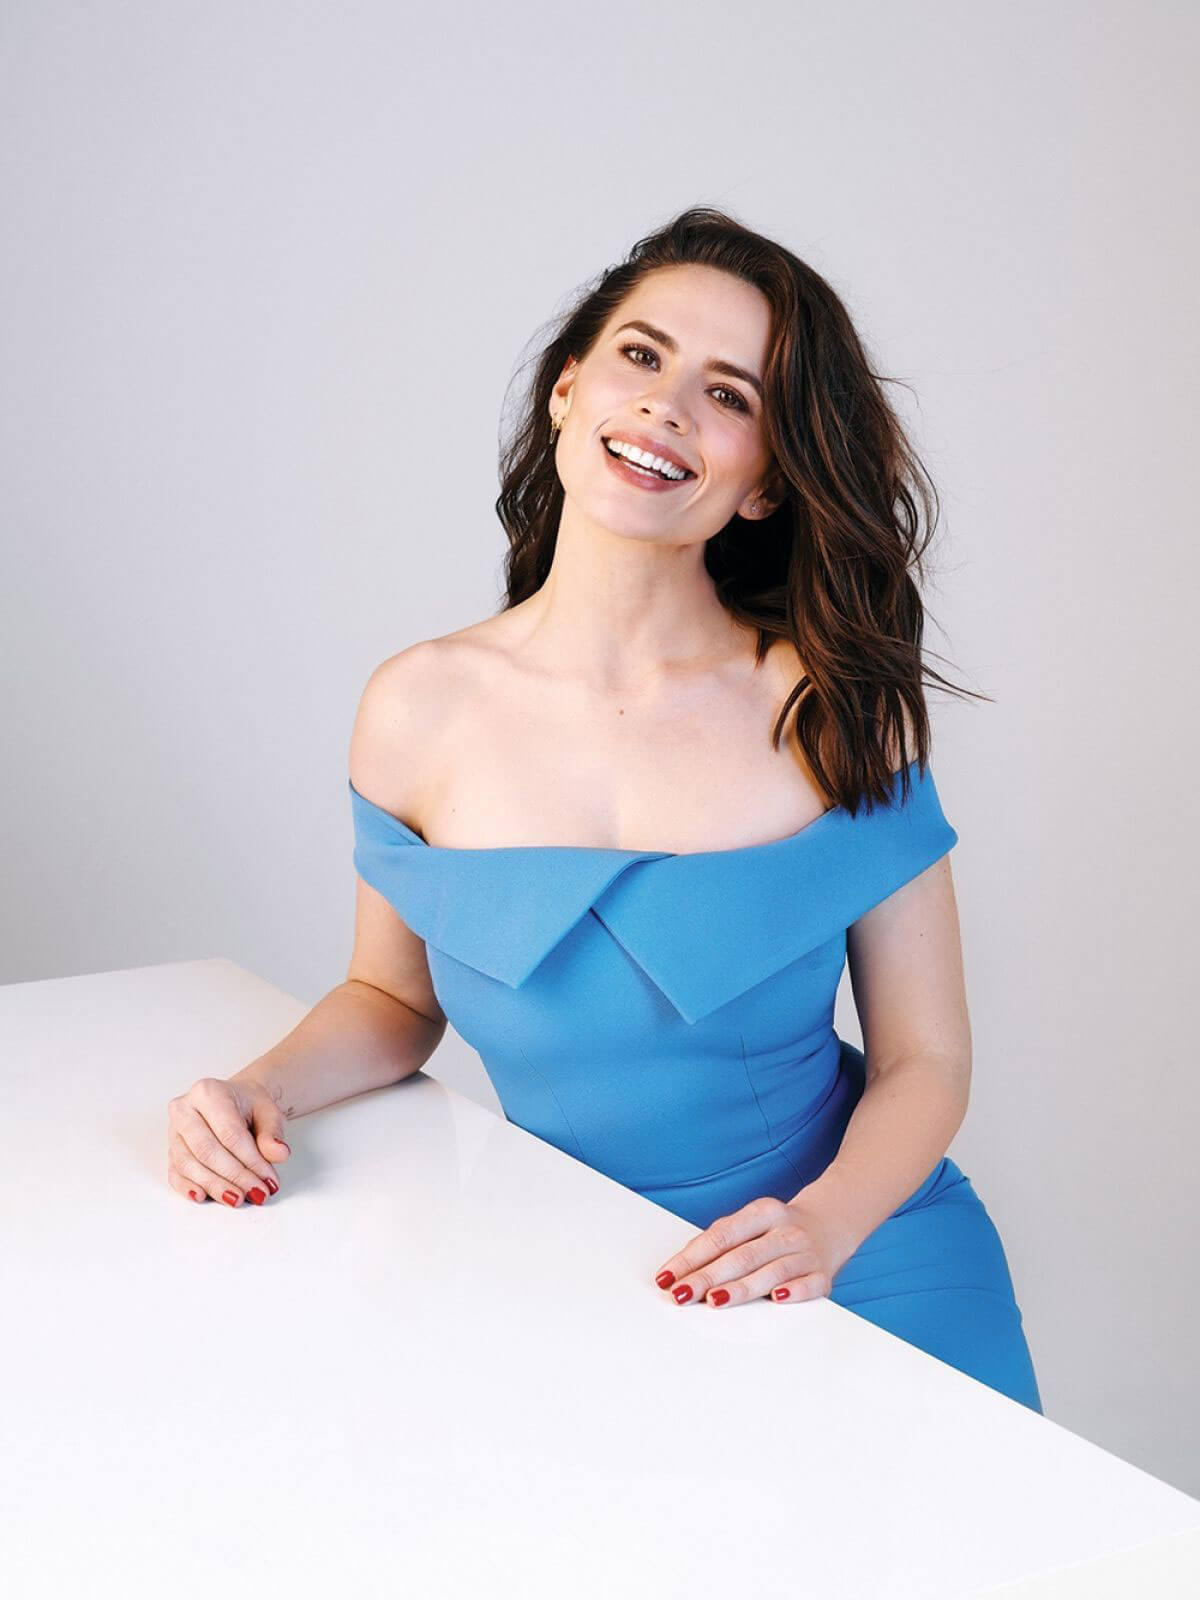 Hayley Atwell for Variety, April 2018 Issue 2